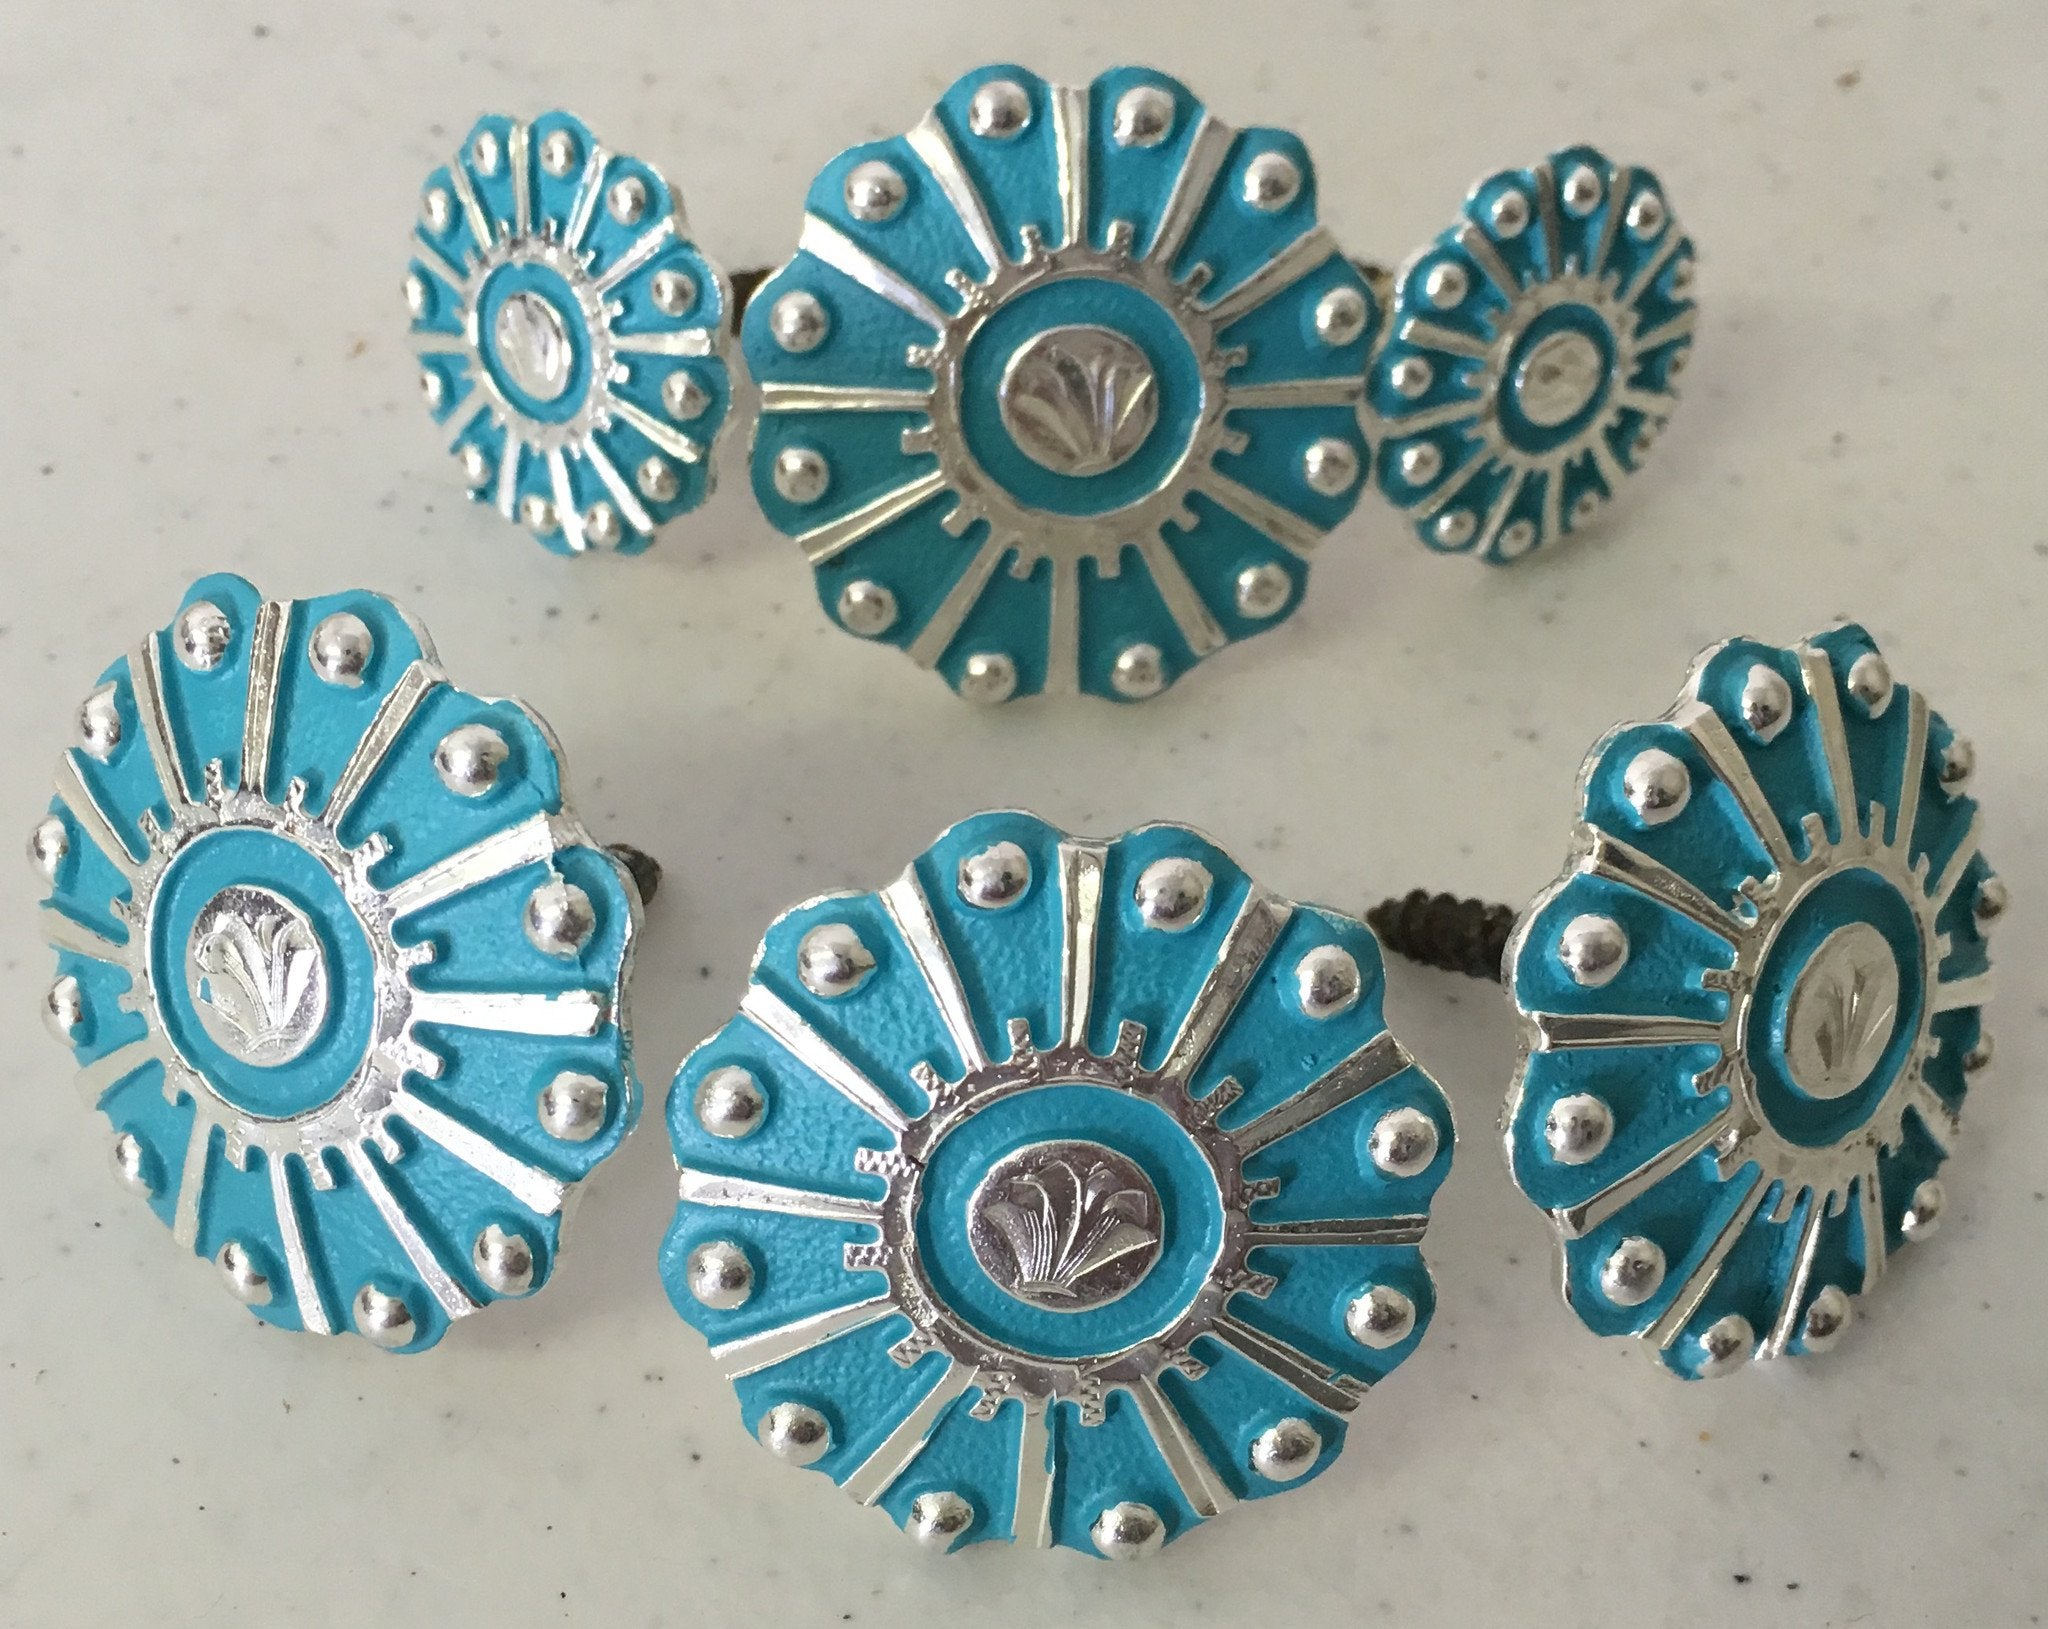 CBCONCH 120 Turquoise Wagon Wheel Conchos